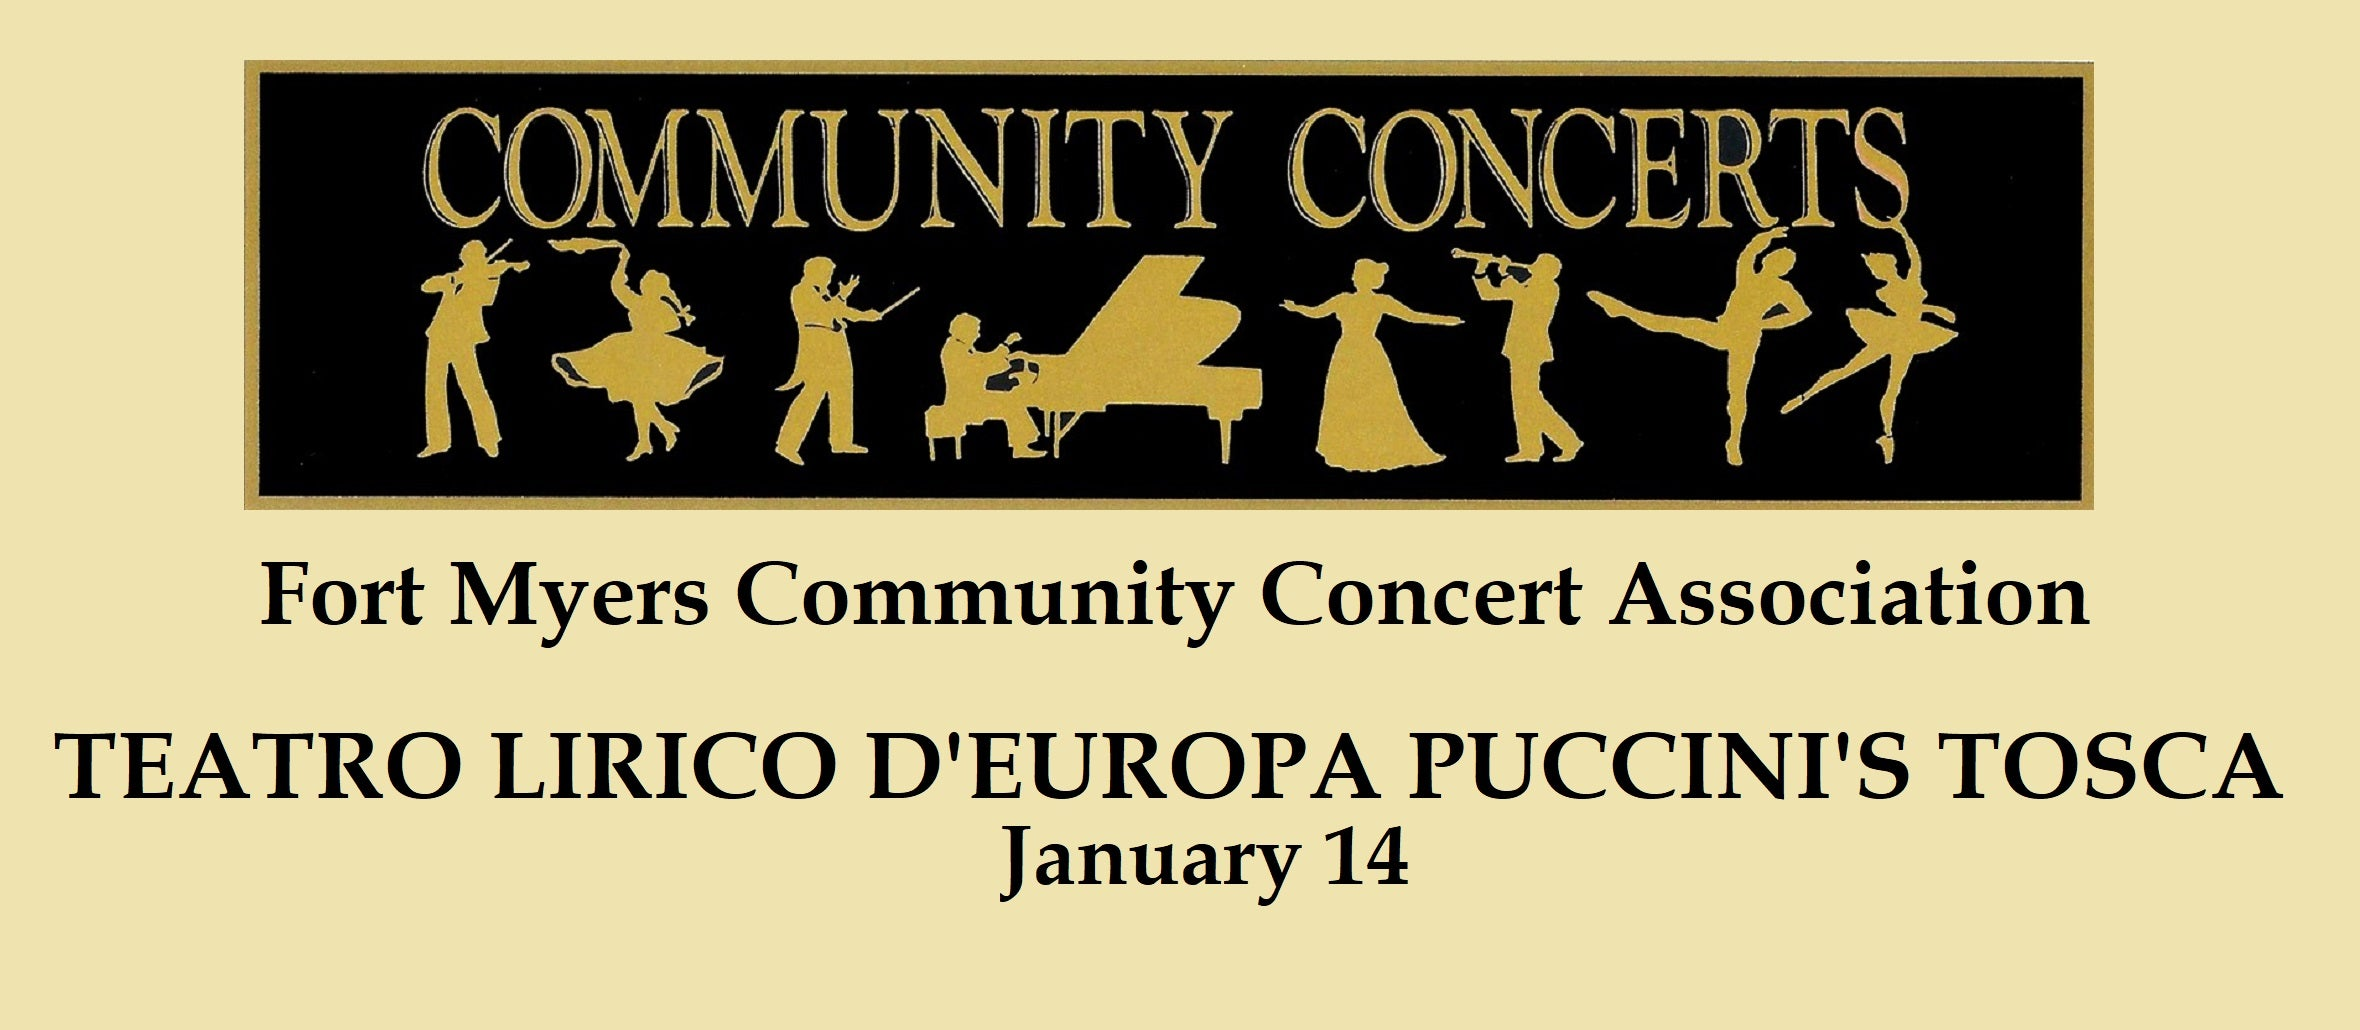 Fort Myers Community Concert: Teatro Lirico D'Europa Puccini's Tosca